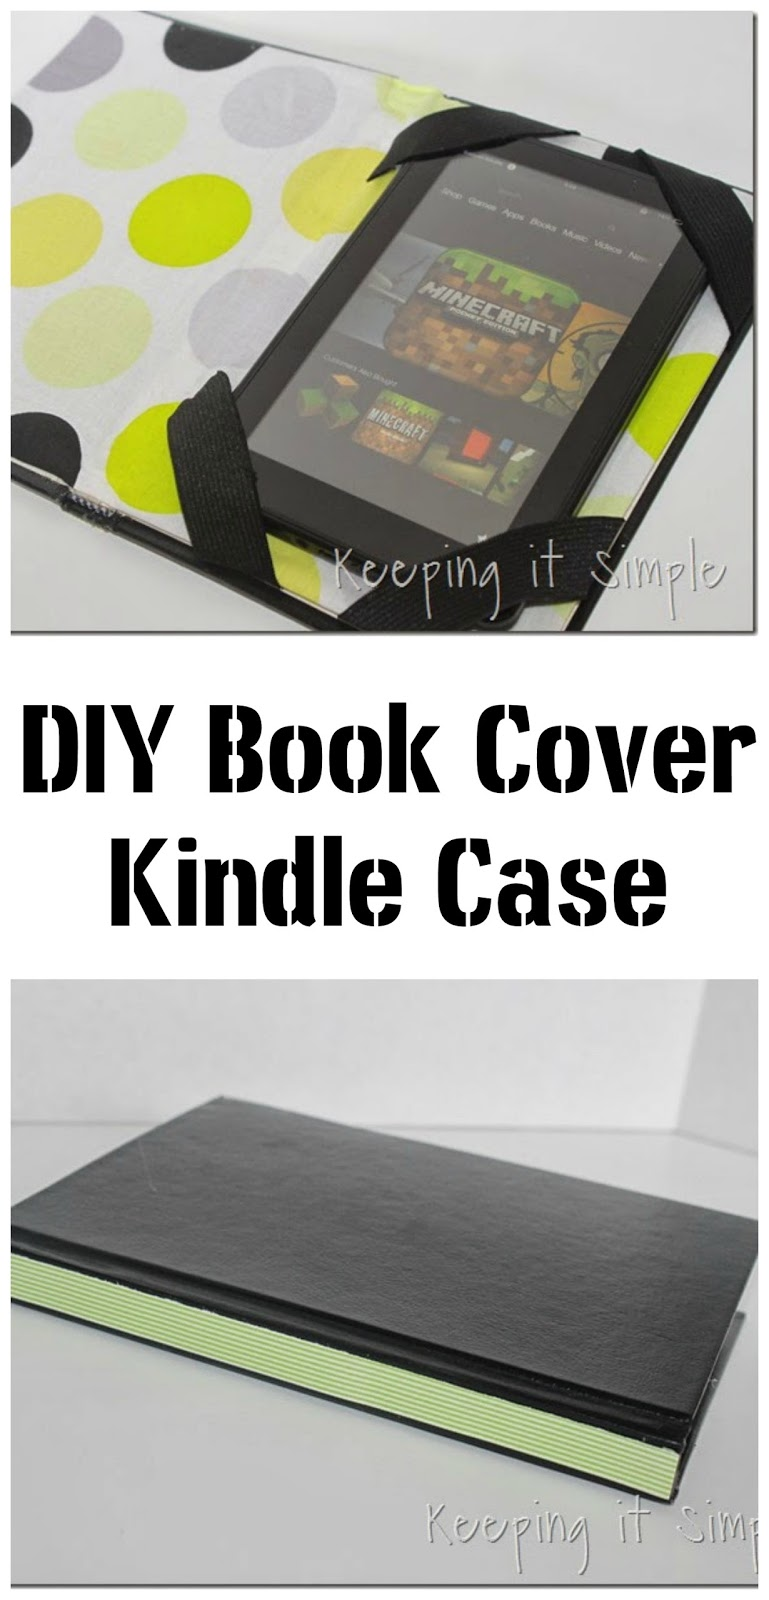 Kindle Book Cover Diy : Keeping it simple easy kindle cover book case